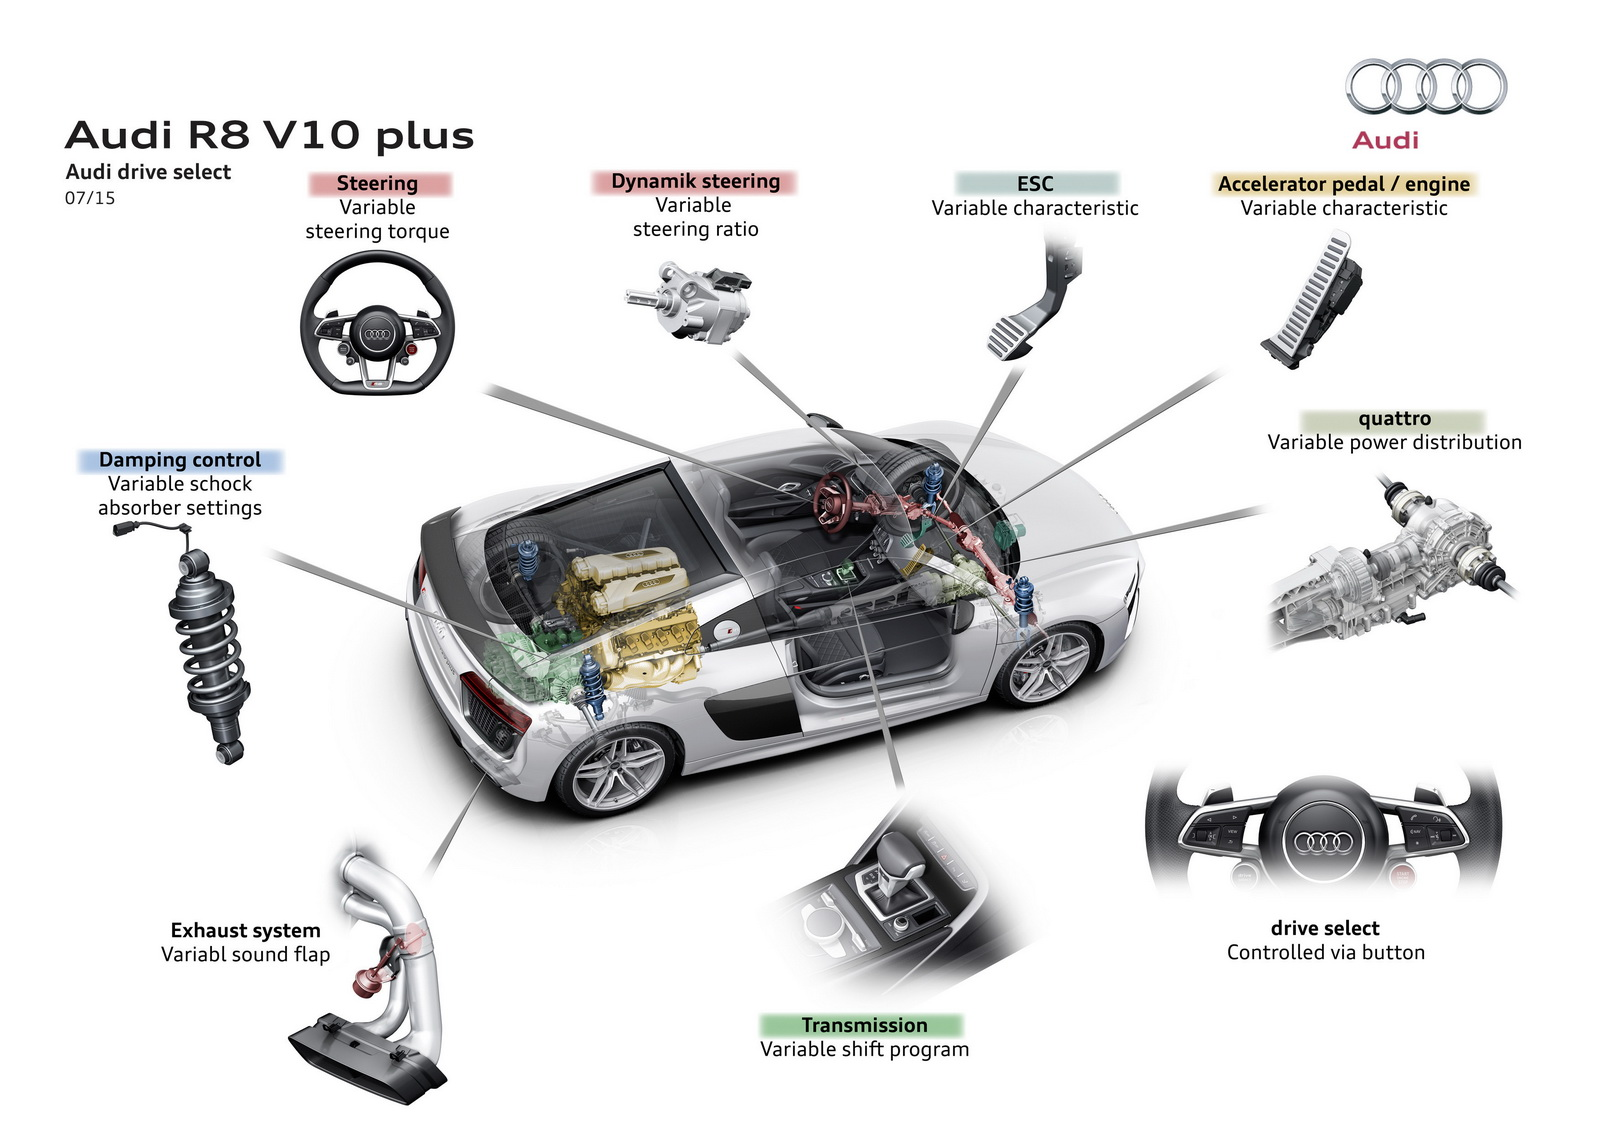 Audi S New 602hp R8 V10 Plus Detailed In New Gallery With